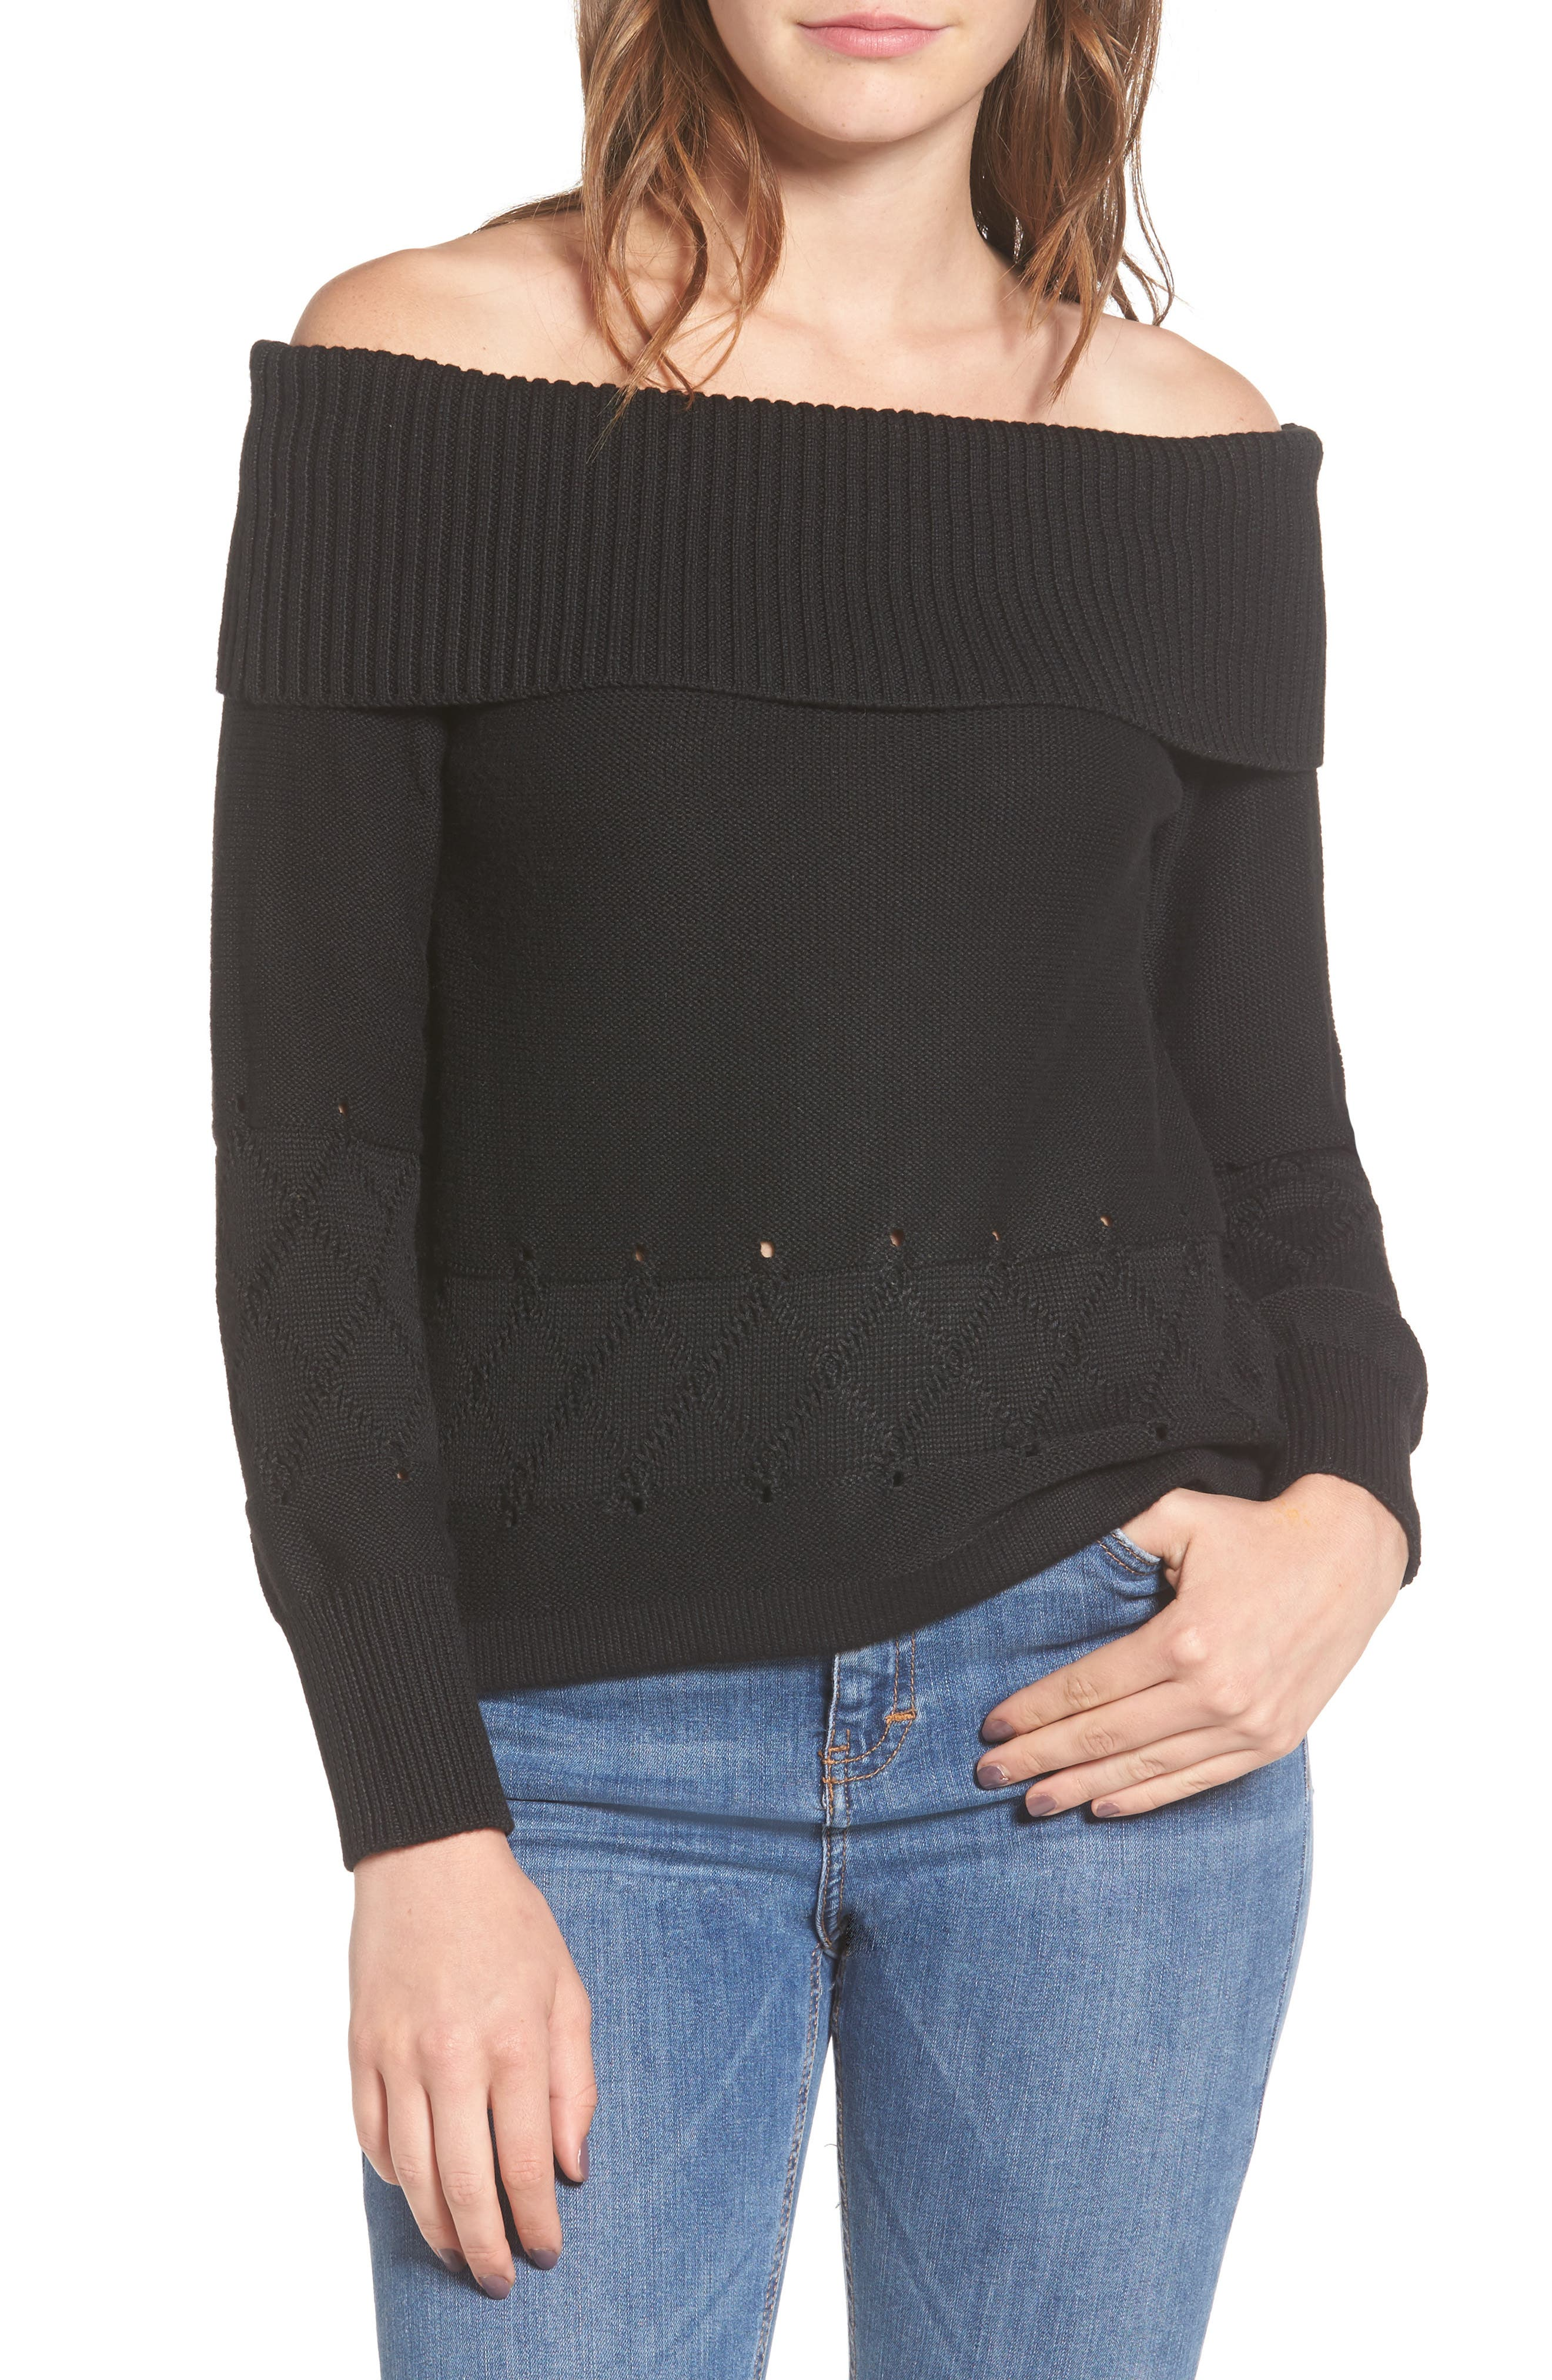 devlin Terri Off the Shoulder Sweater